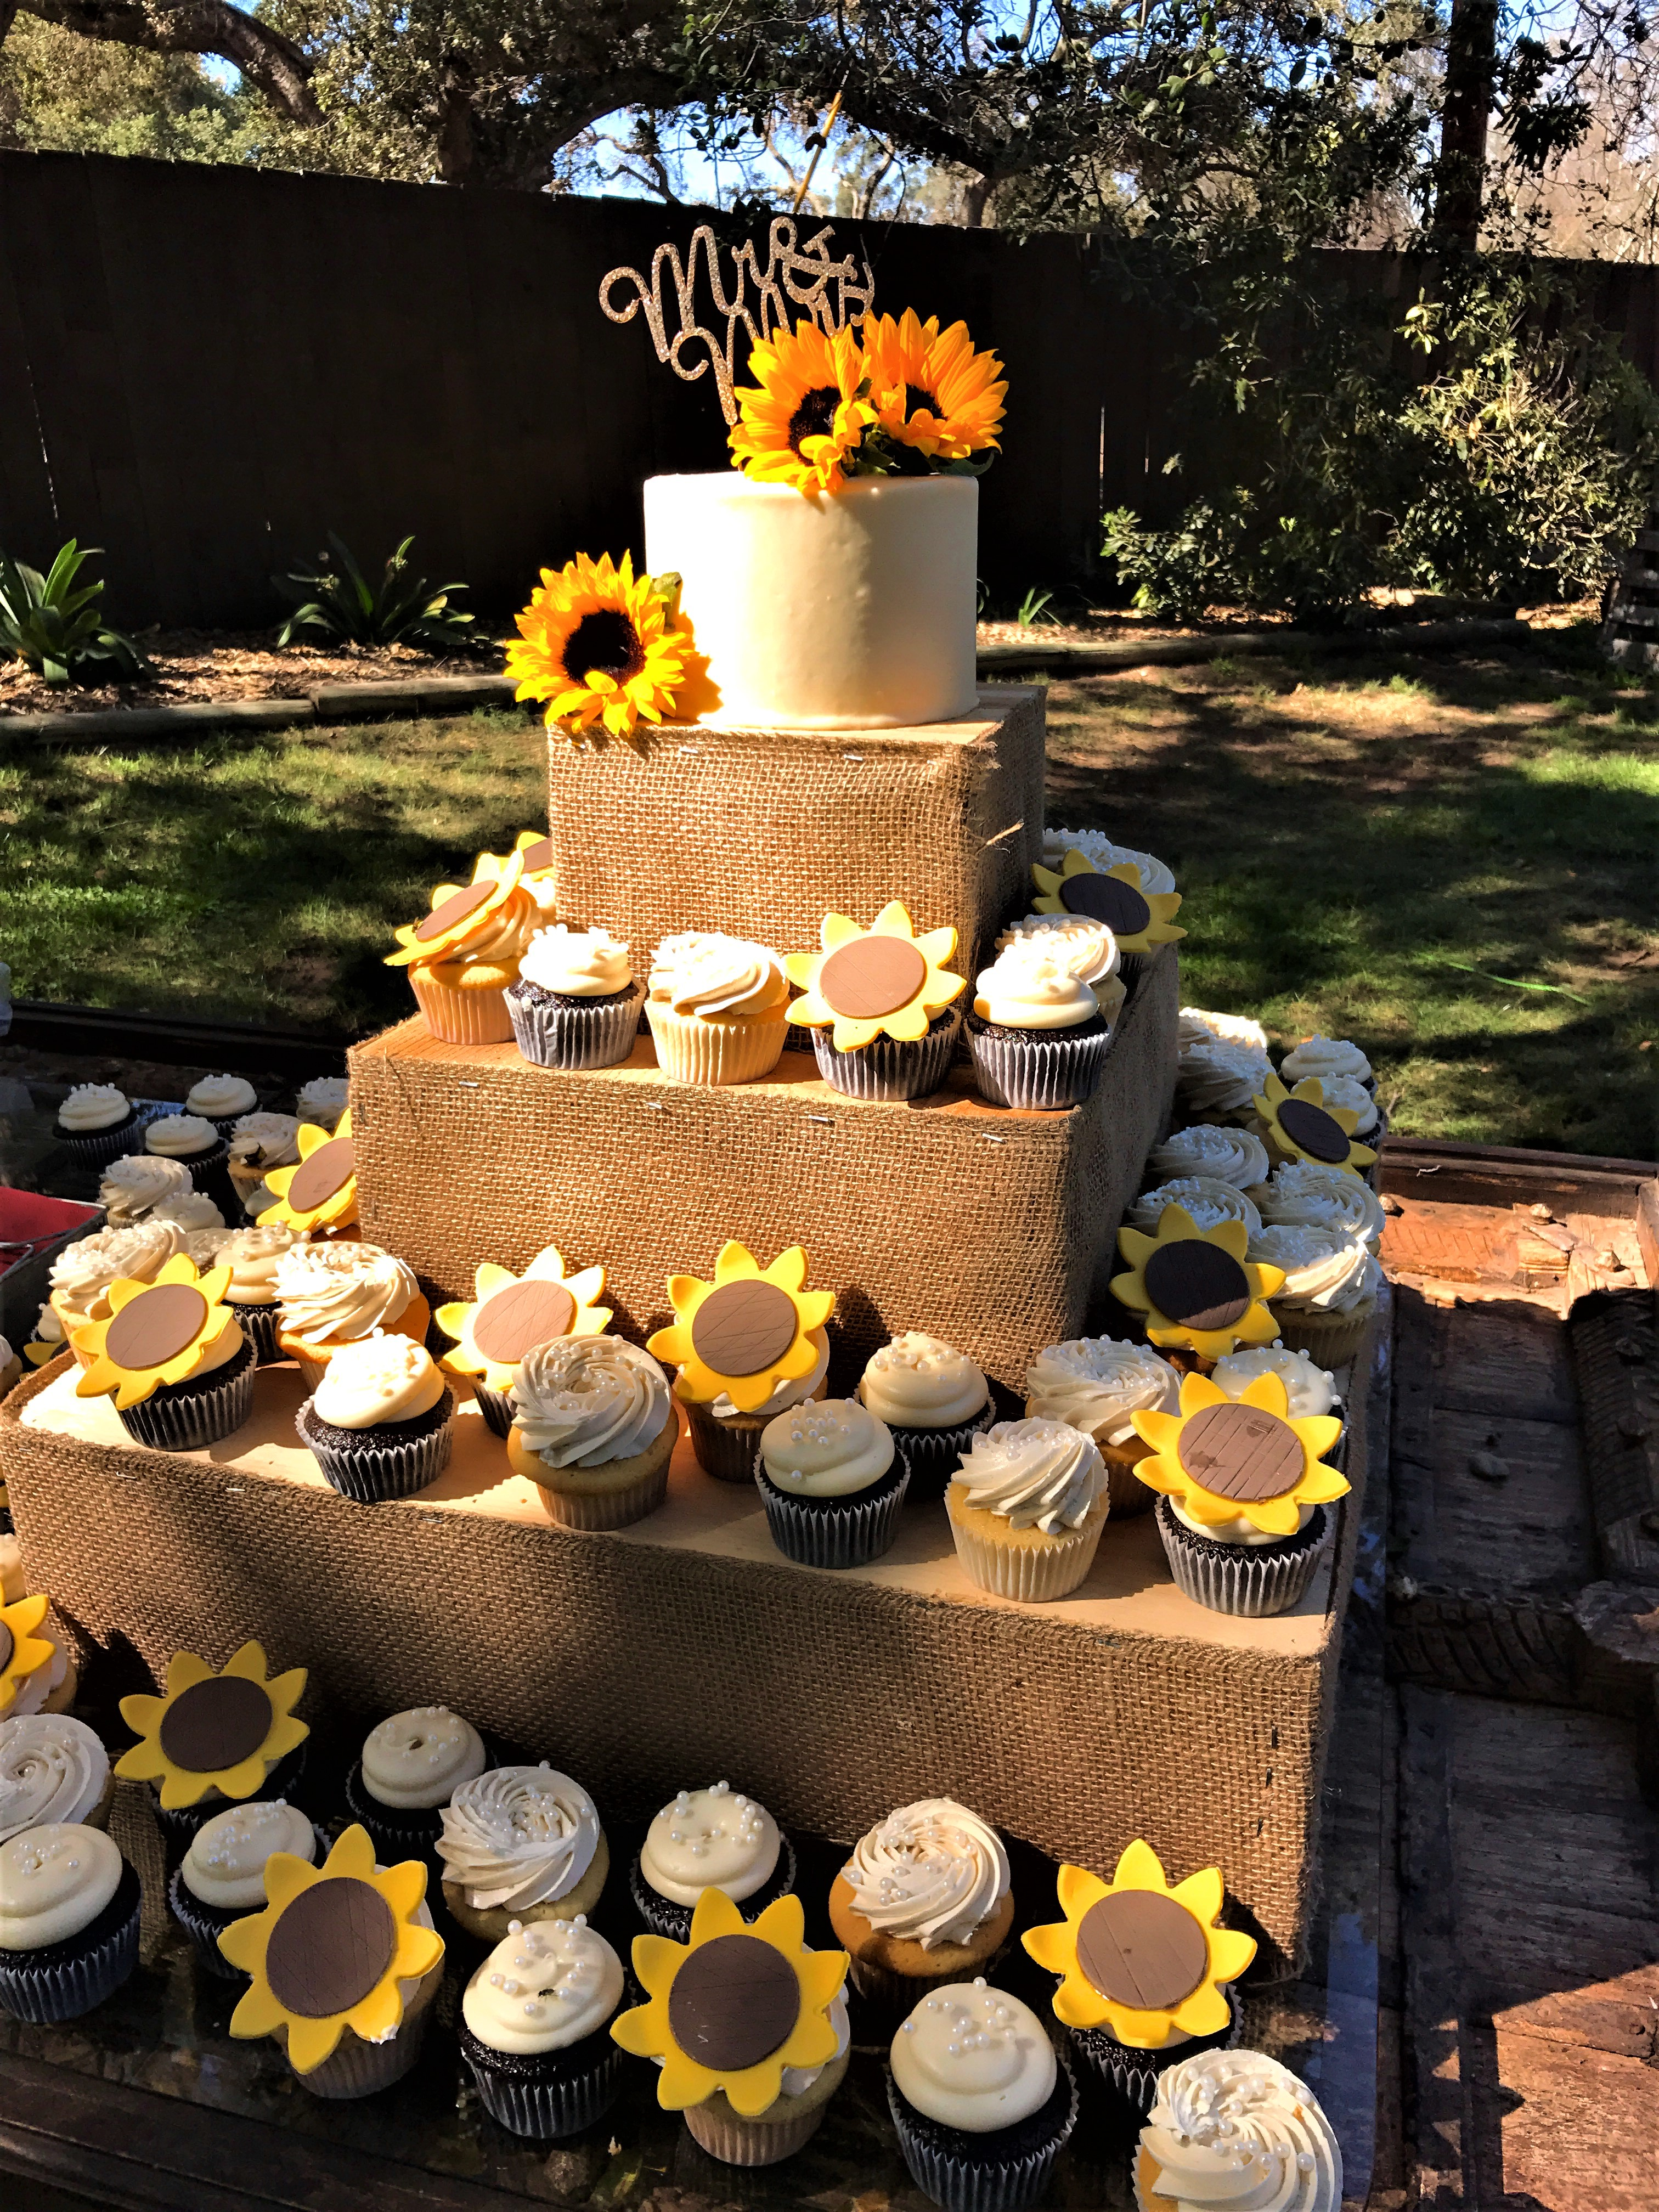 "125 cupcakes w/fondant sunflowers, 6"" classic simple cutting cake"